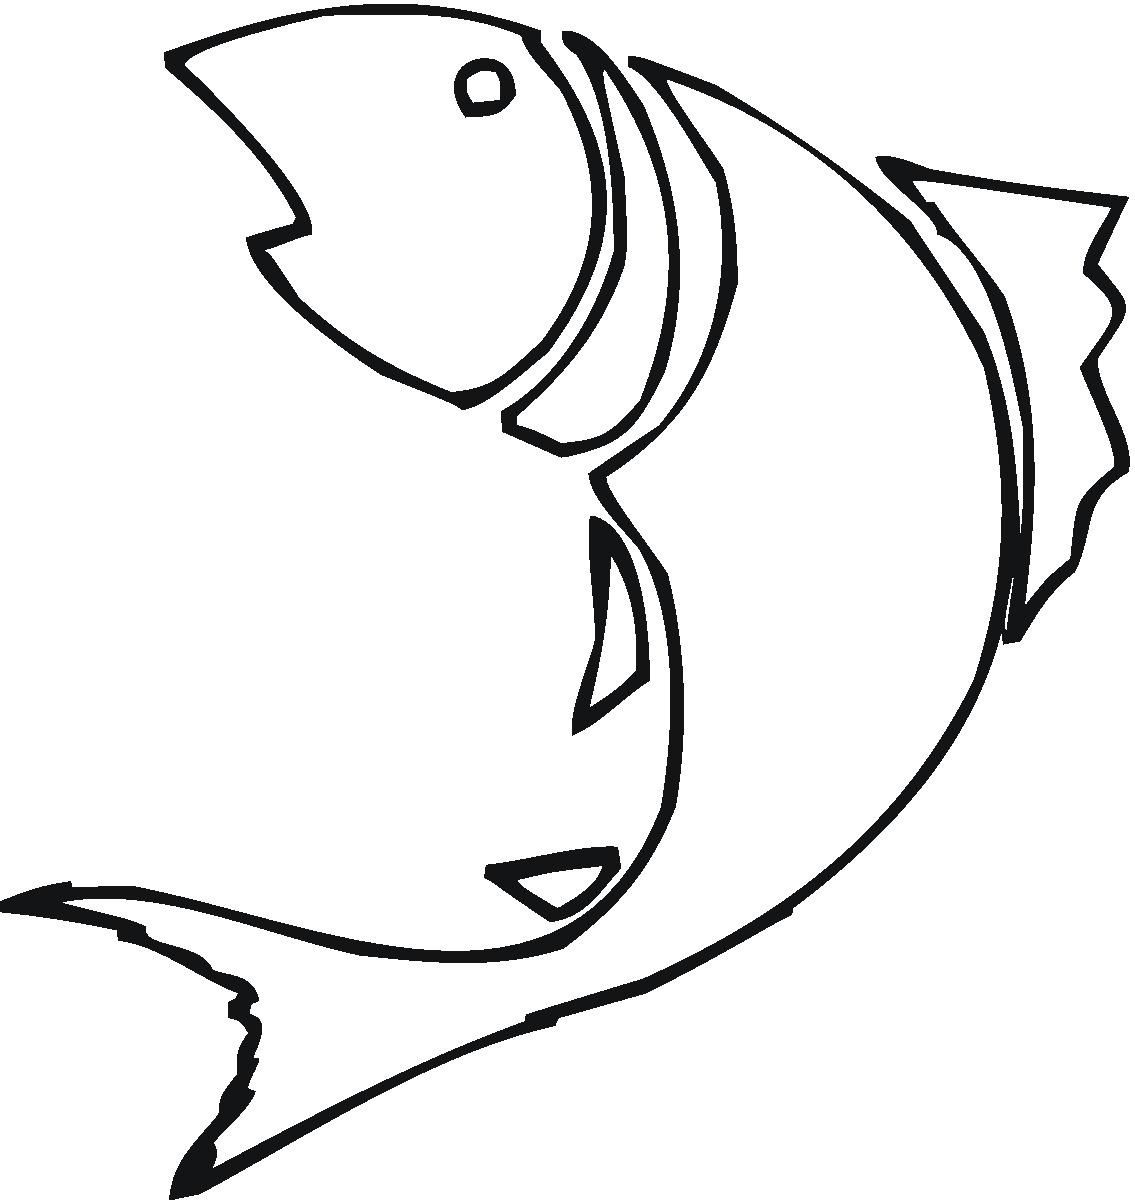 Value easy sketches weird. Drawing clipart fish clip art royalty free stock